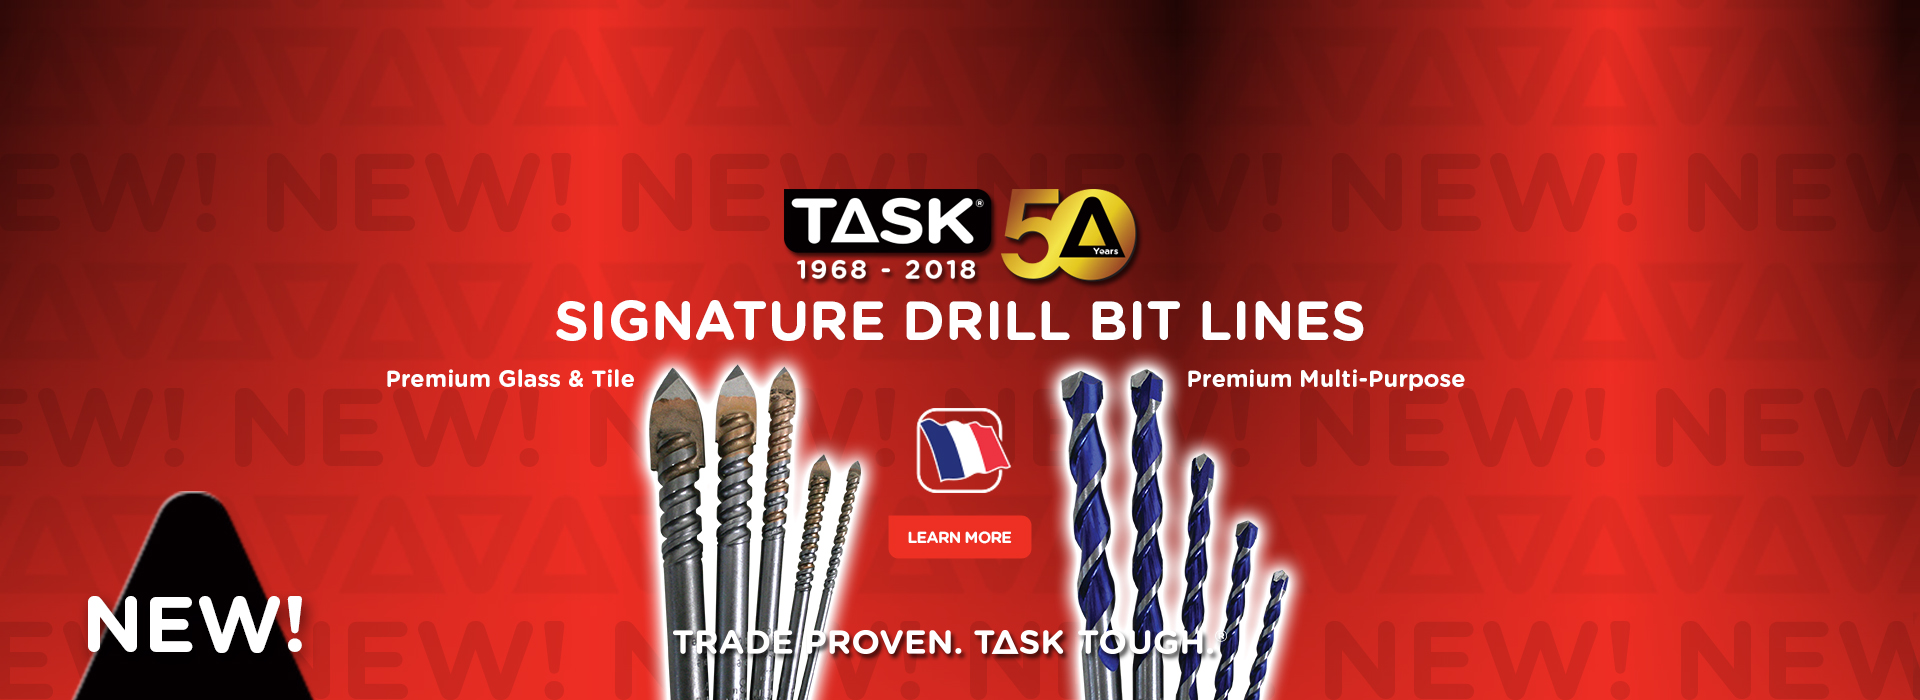 Premium Glass Tile & Multipurpose Drill Bits